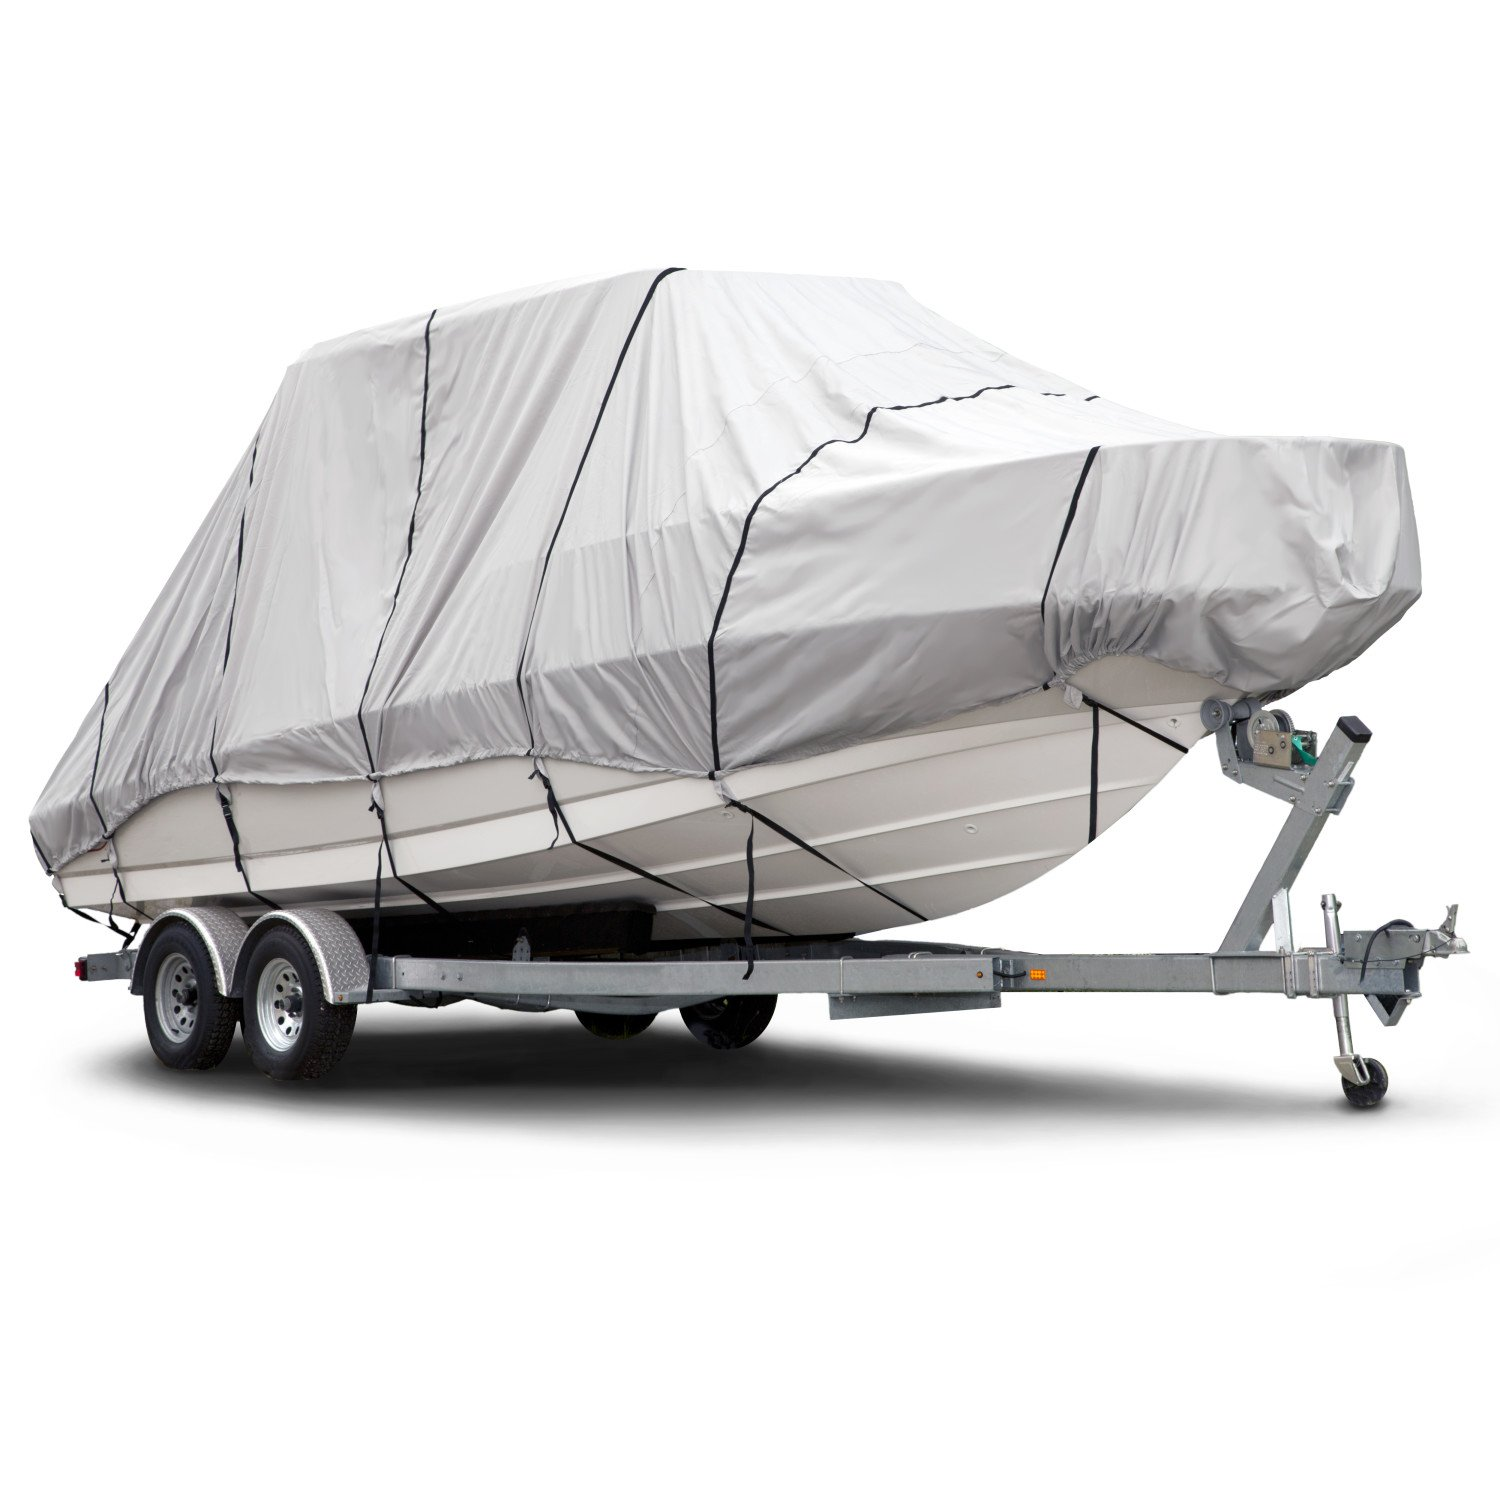 Budge 600 Denier Boat Cover fits Hard Top / T-Top Boats B-621-X6 (20' to 22' Long, Gray)